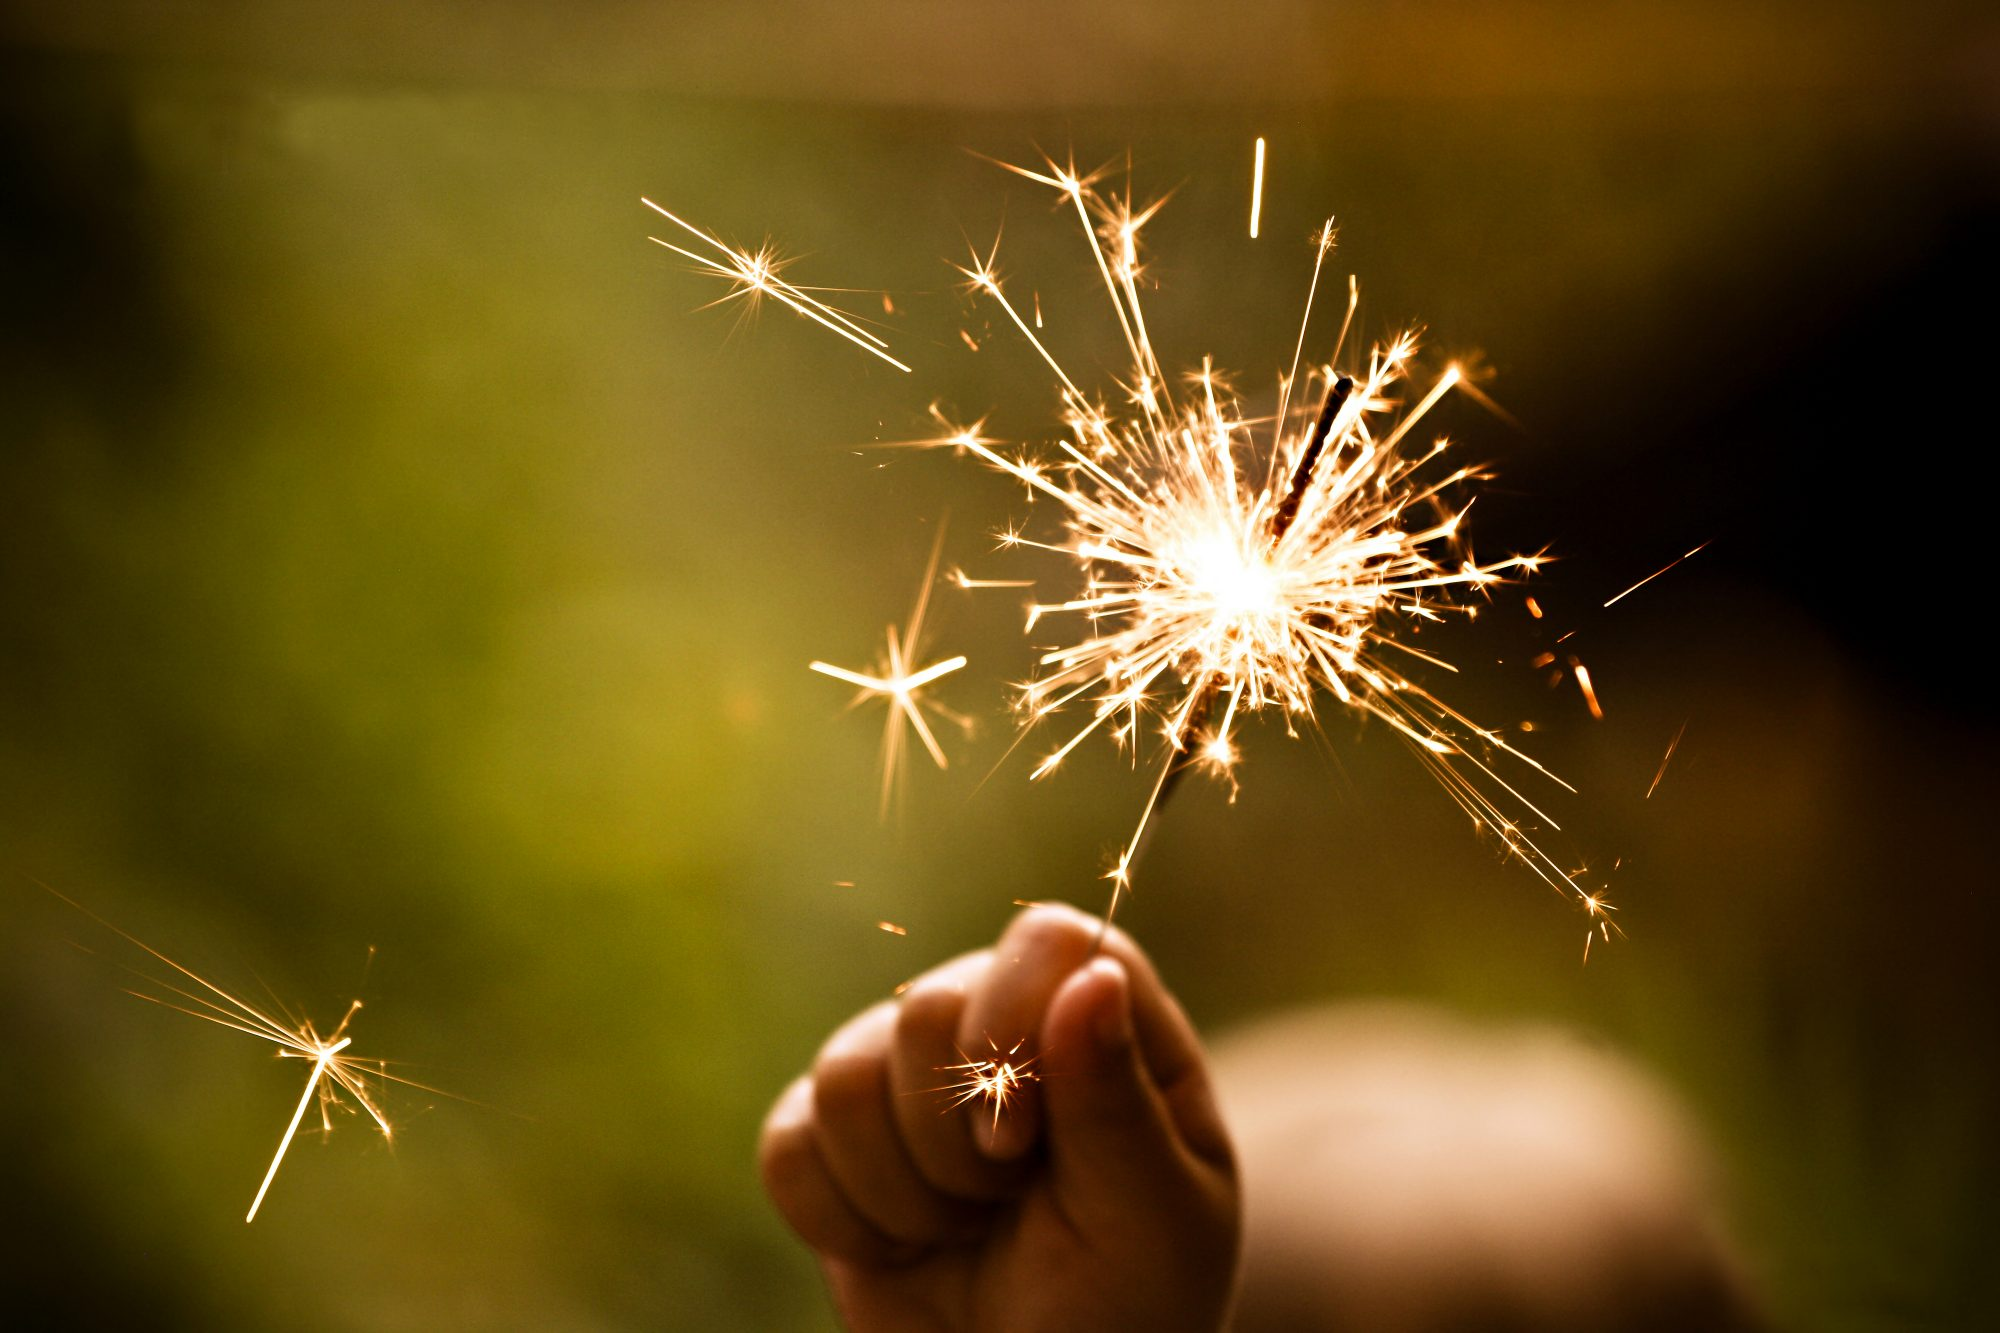 Sparkler in hand to represent supercharging your giving